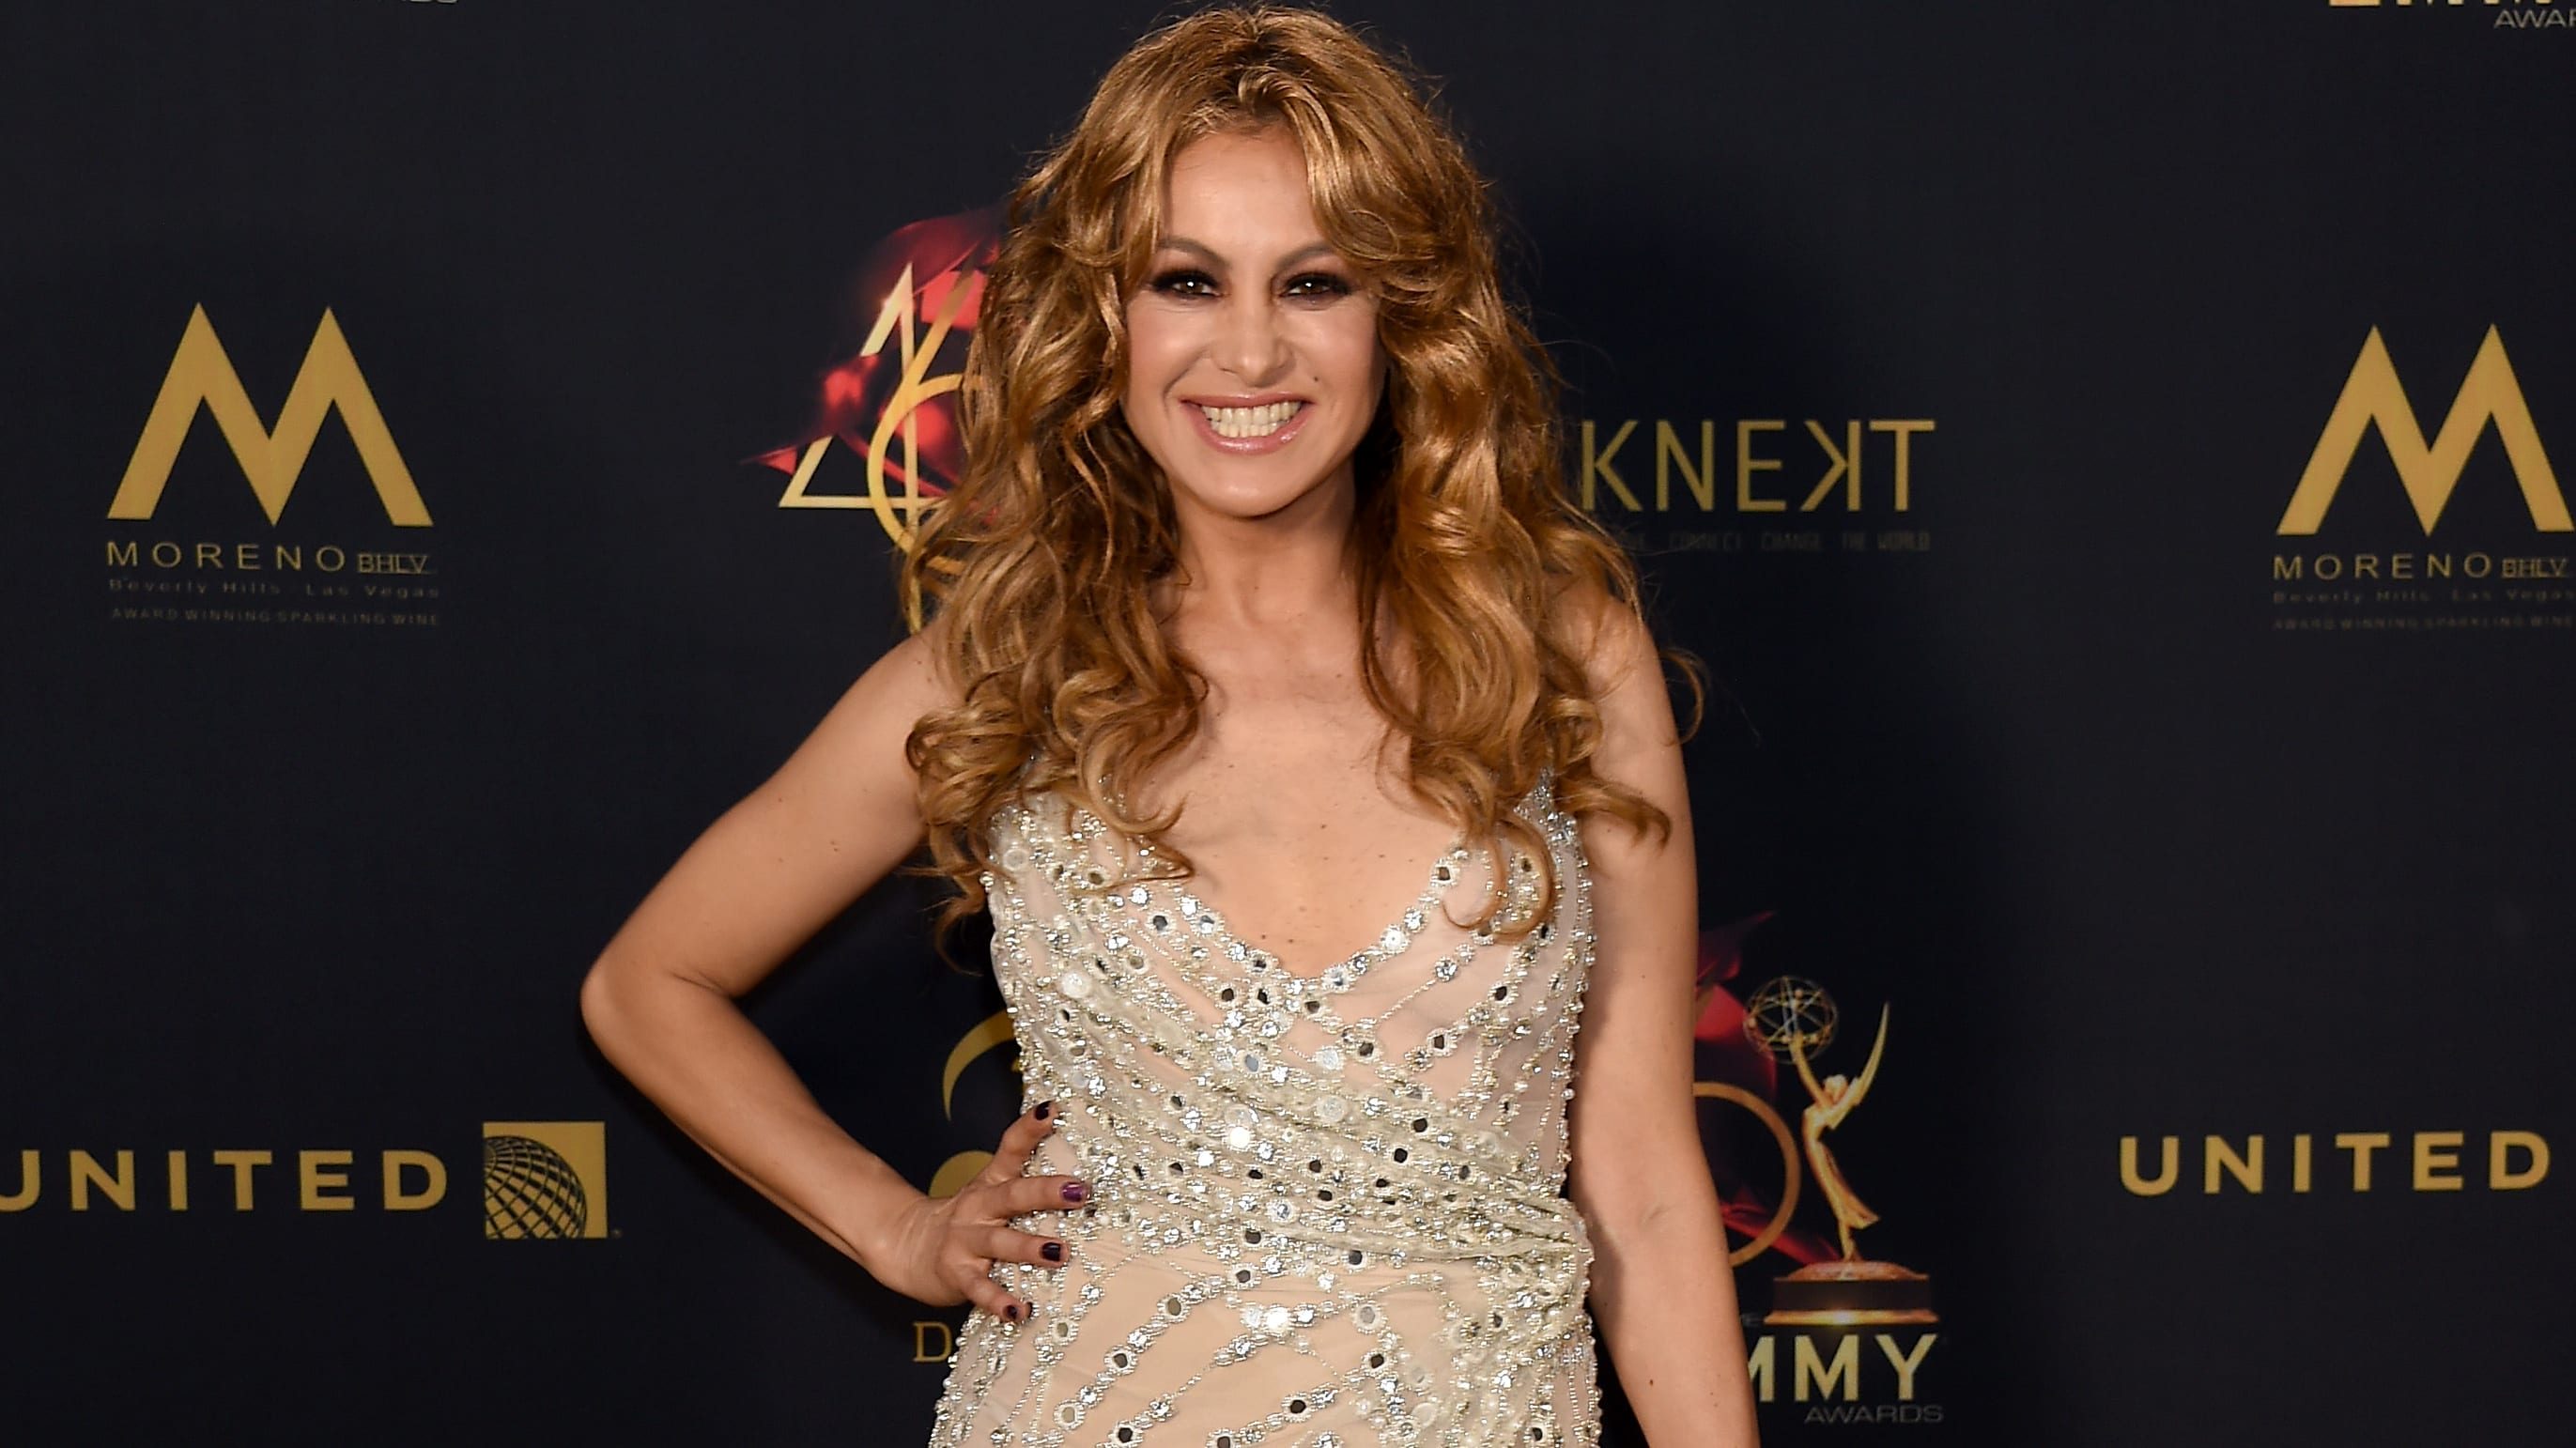 PASADENA, CALIFORNIA - MAY 05: Paulina Rubio poses in the press room during the 46th annual Daytime Emmy Awards at Pasadena Civic Center on May 05, 2019 in Pasadena, California. (Photo by Gregg DeGuire/Getty Images)